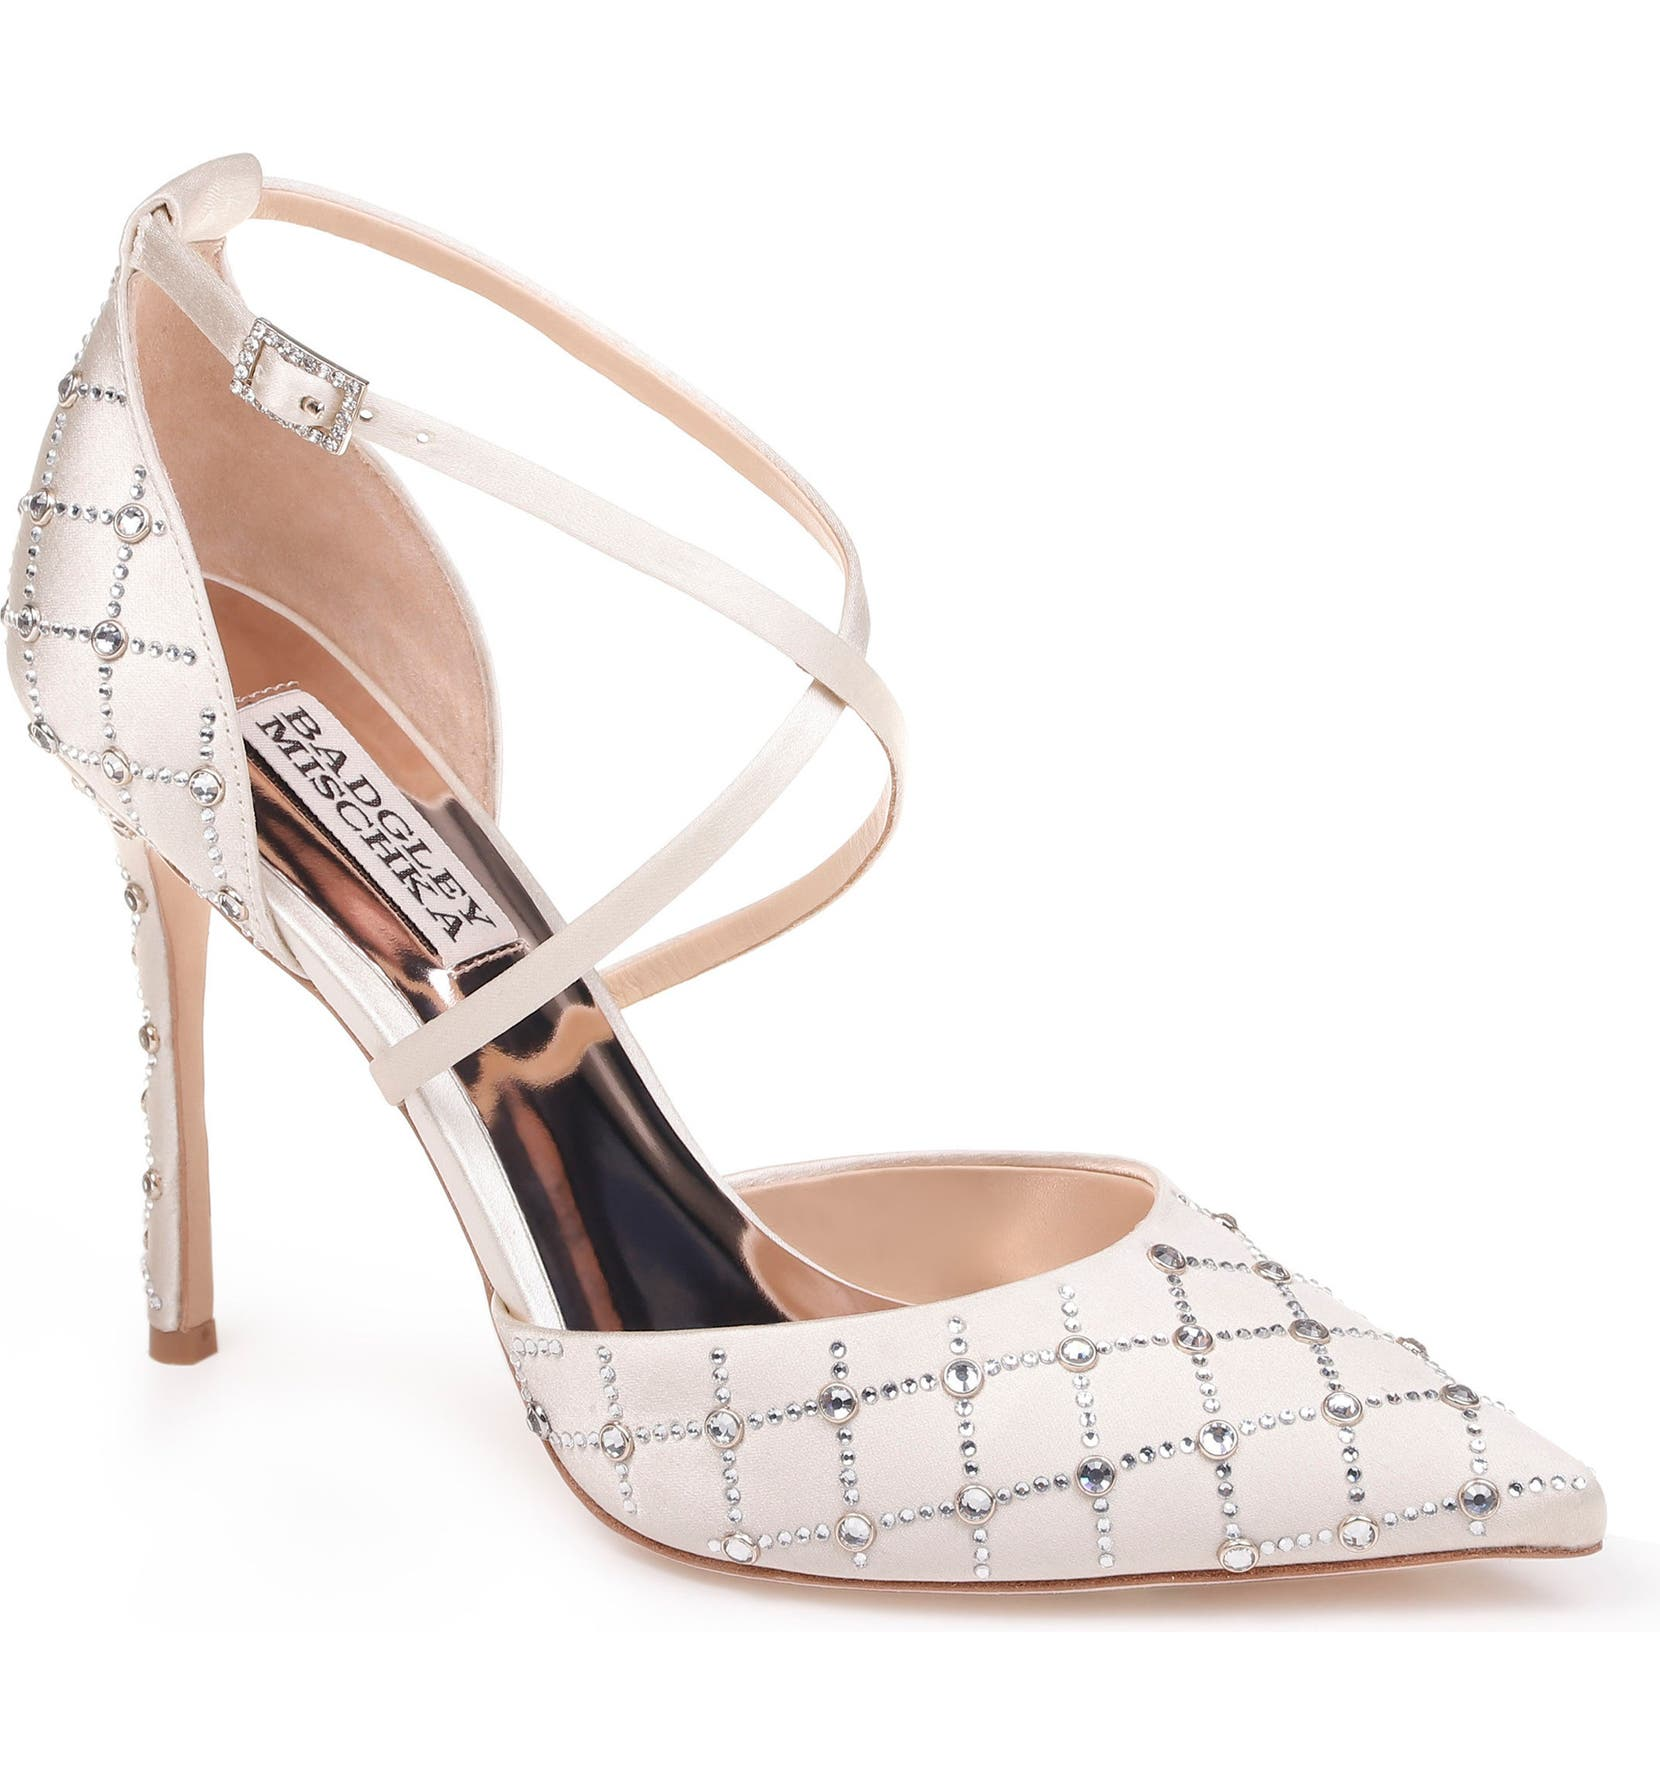 4e672cdb5aa Badgley Mischka Shiloh Pointy Toe Pump (Women)